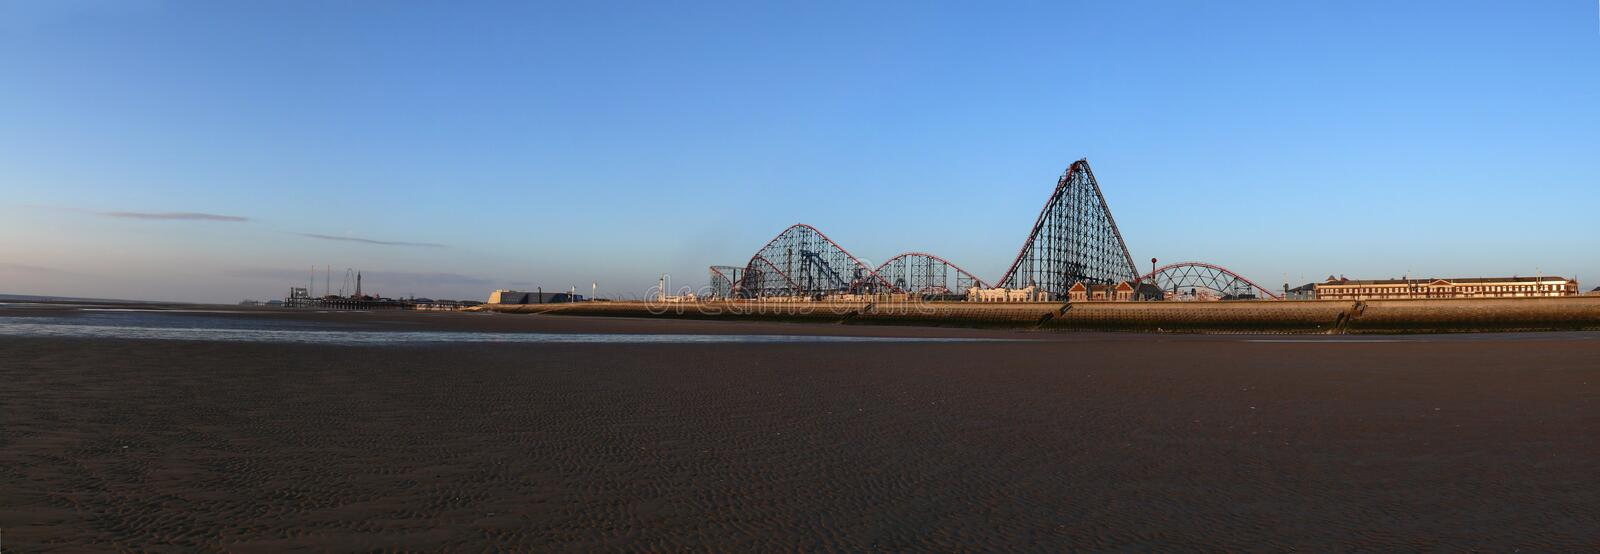 blackpool fotografia royalty free